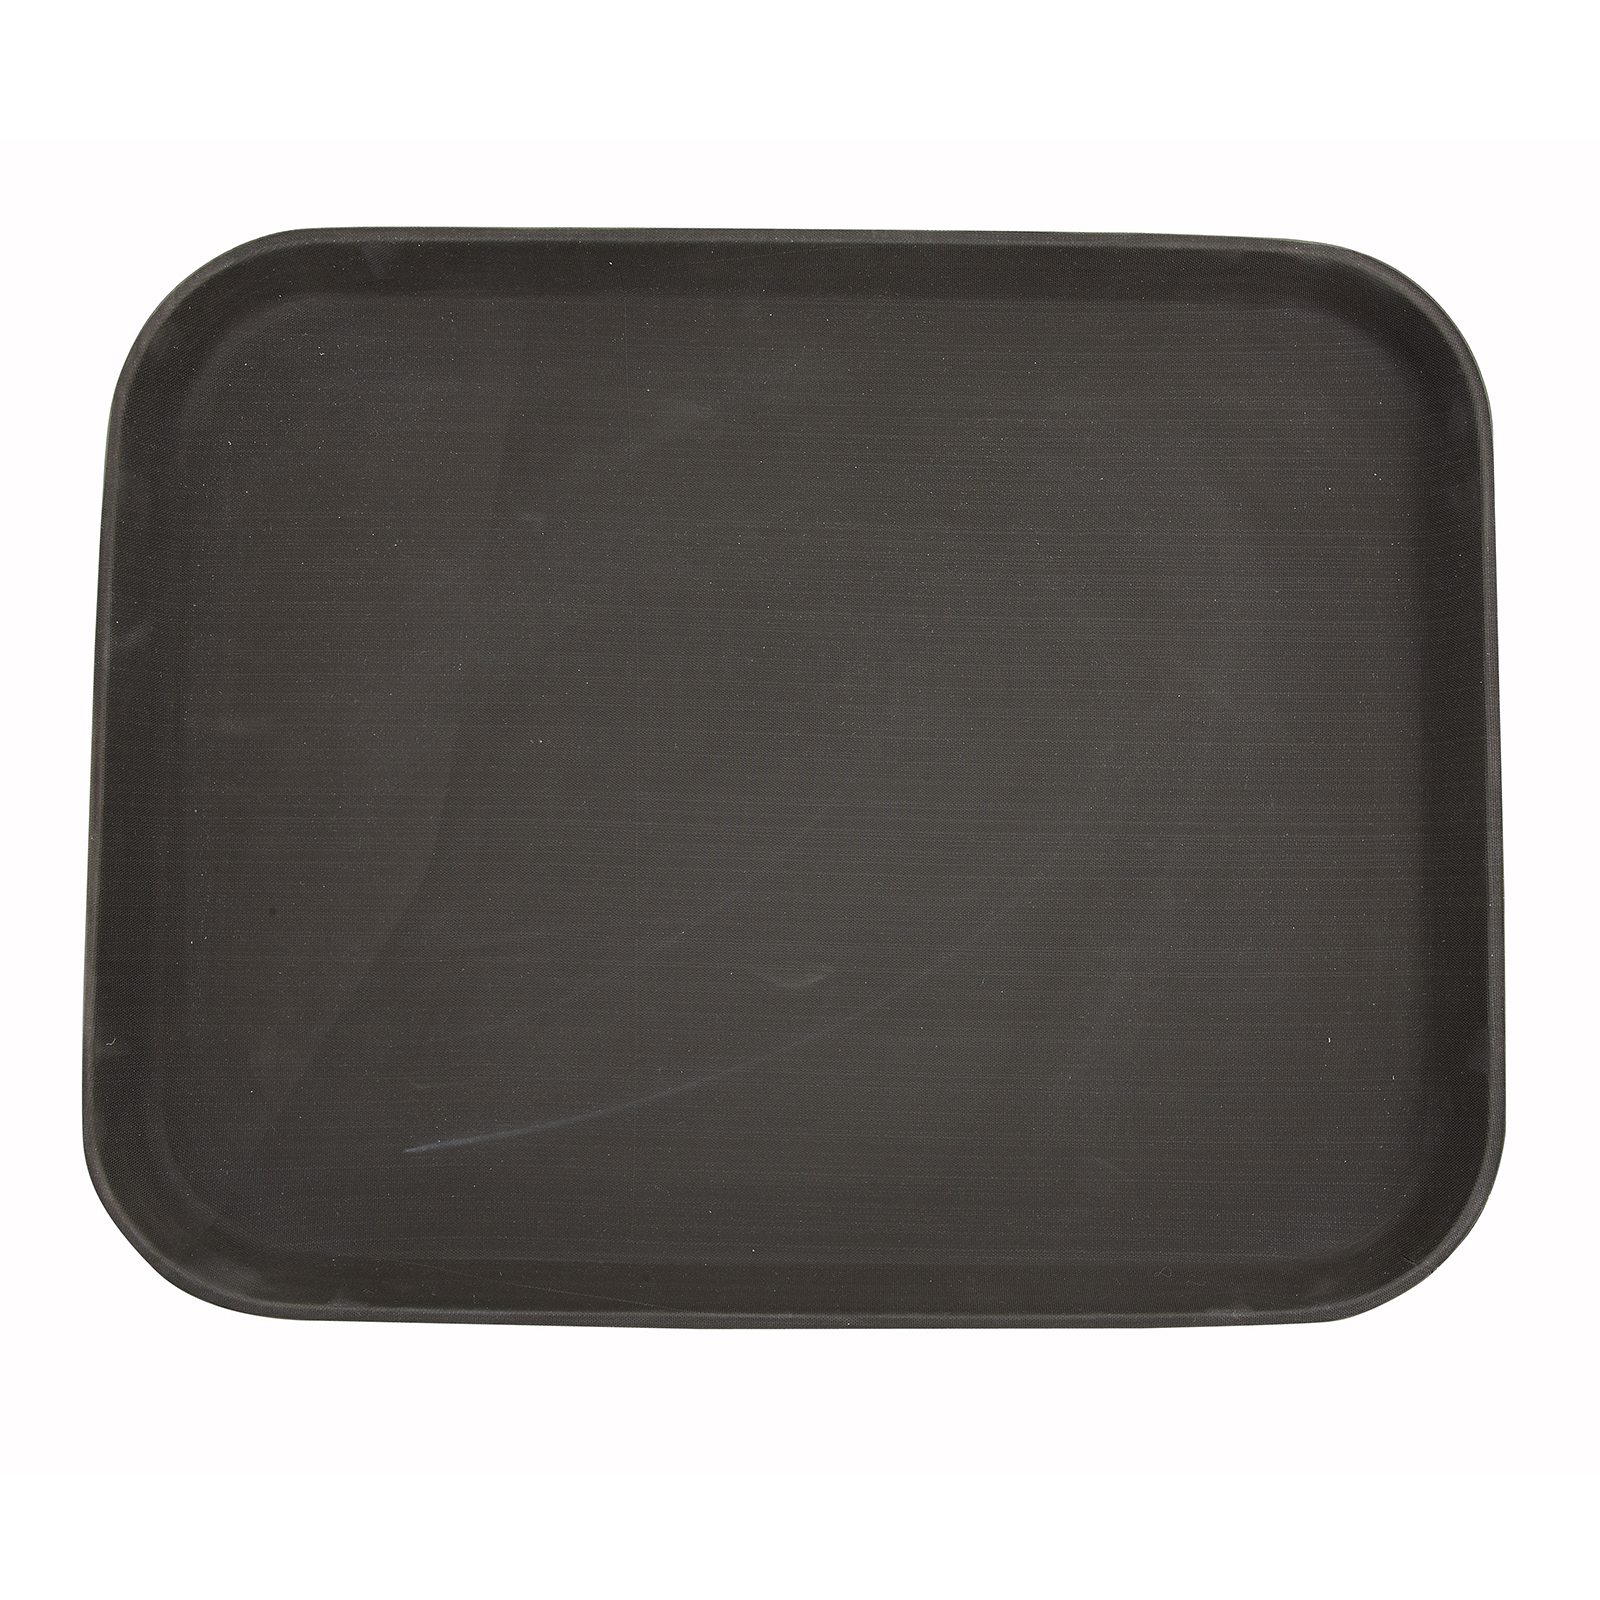 Winco TRH-1418 serving tray, non-skid